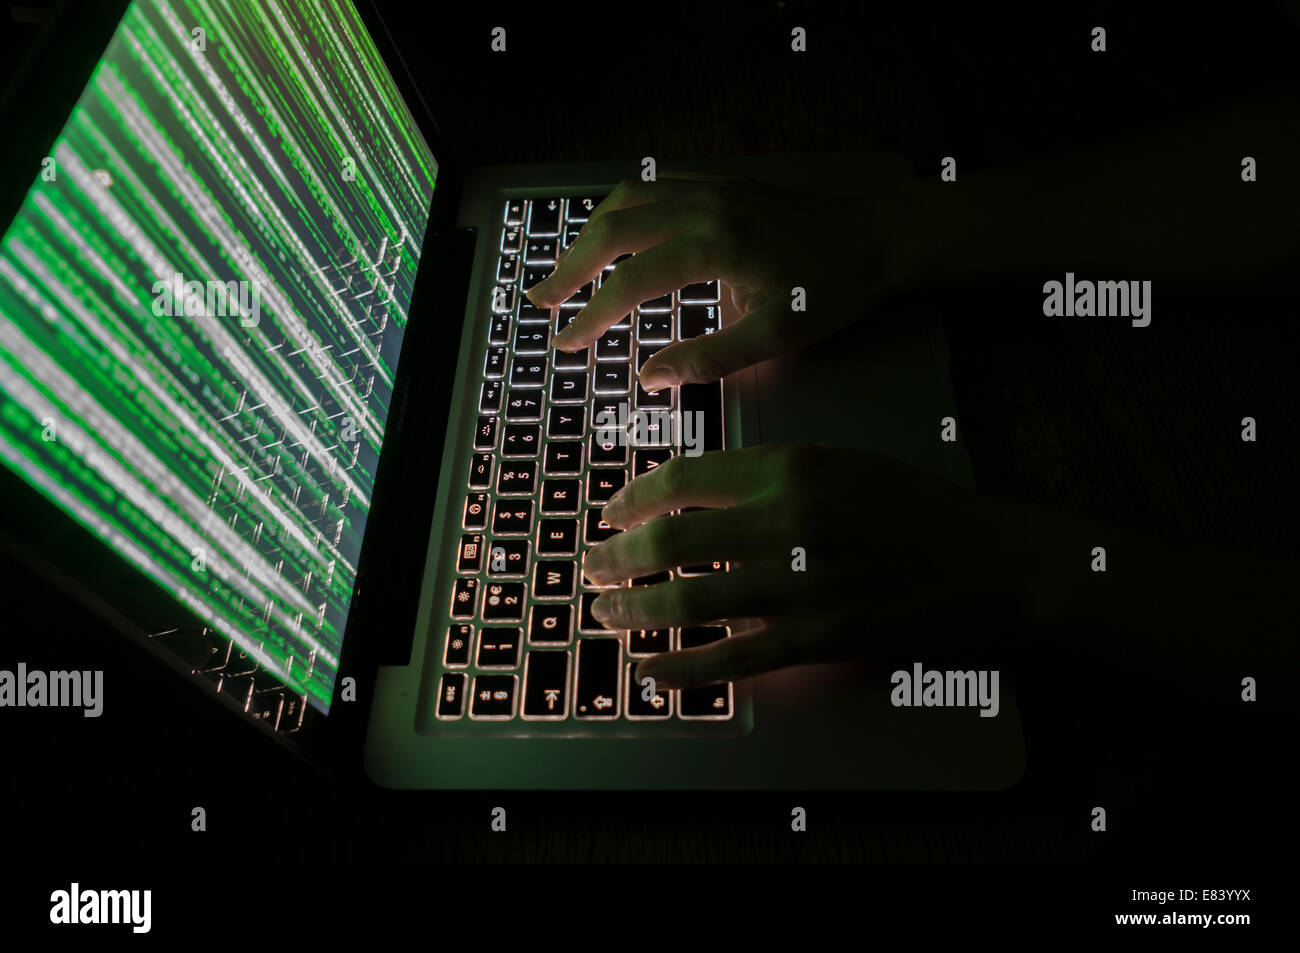 Computer hacker typing on keyboard with green matrix style graphics on the monitor - Stock Image